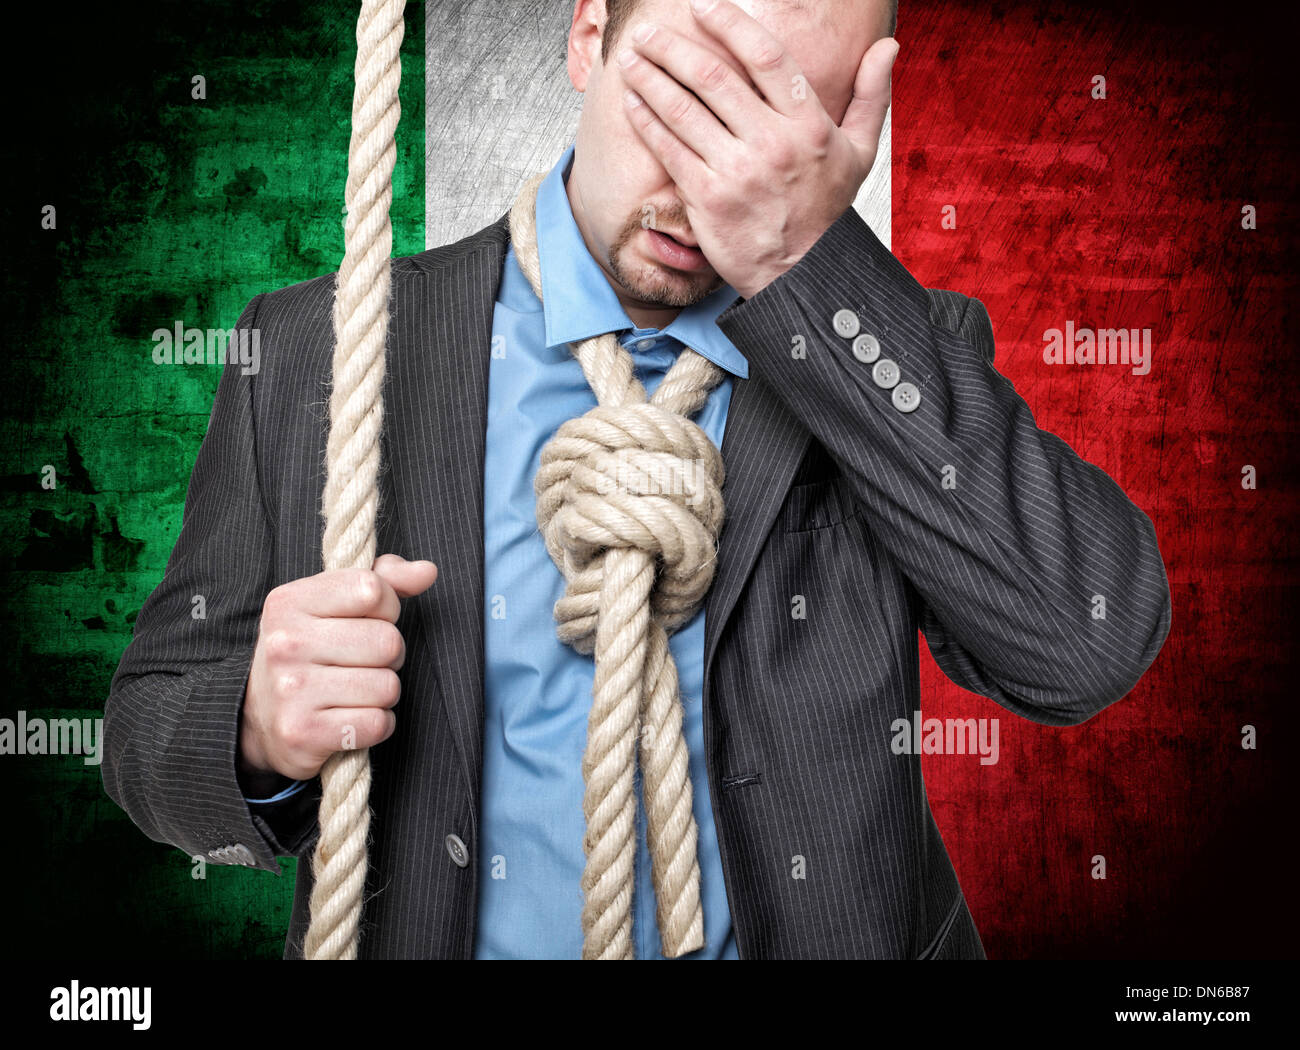 desperate man with loop and italian flag background - Stock Image